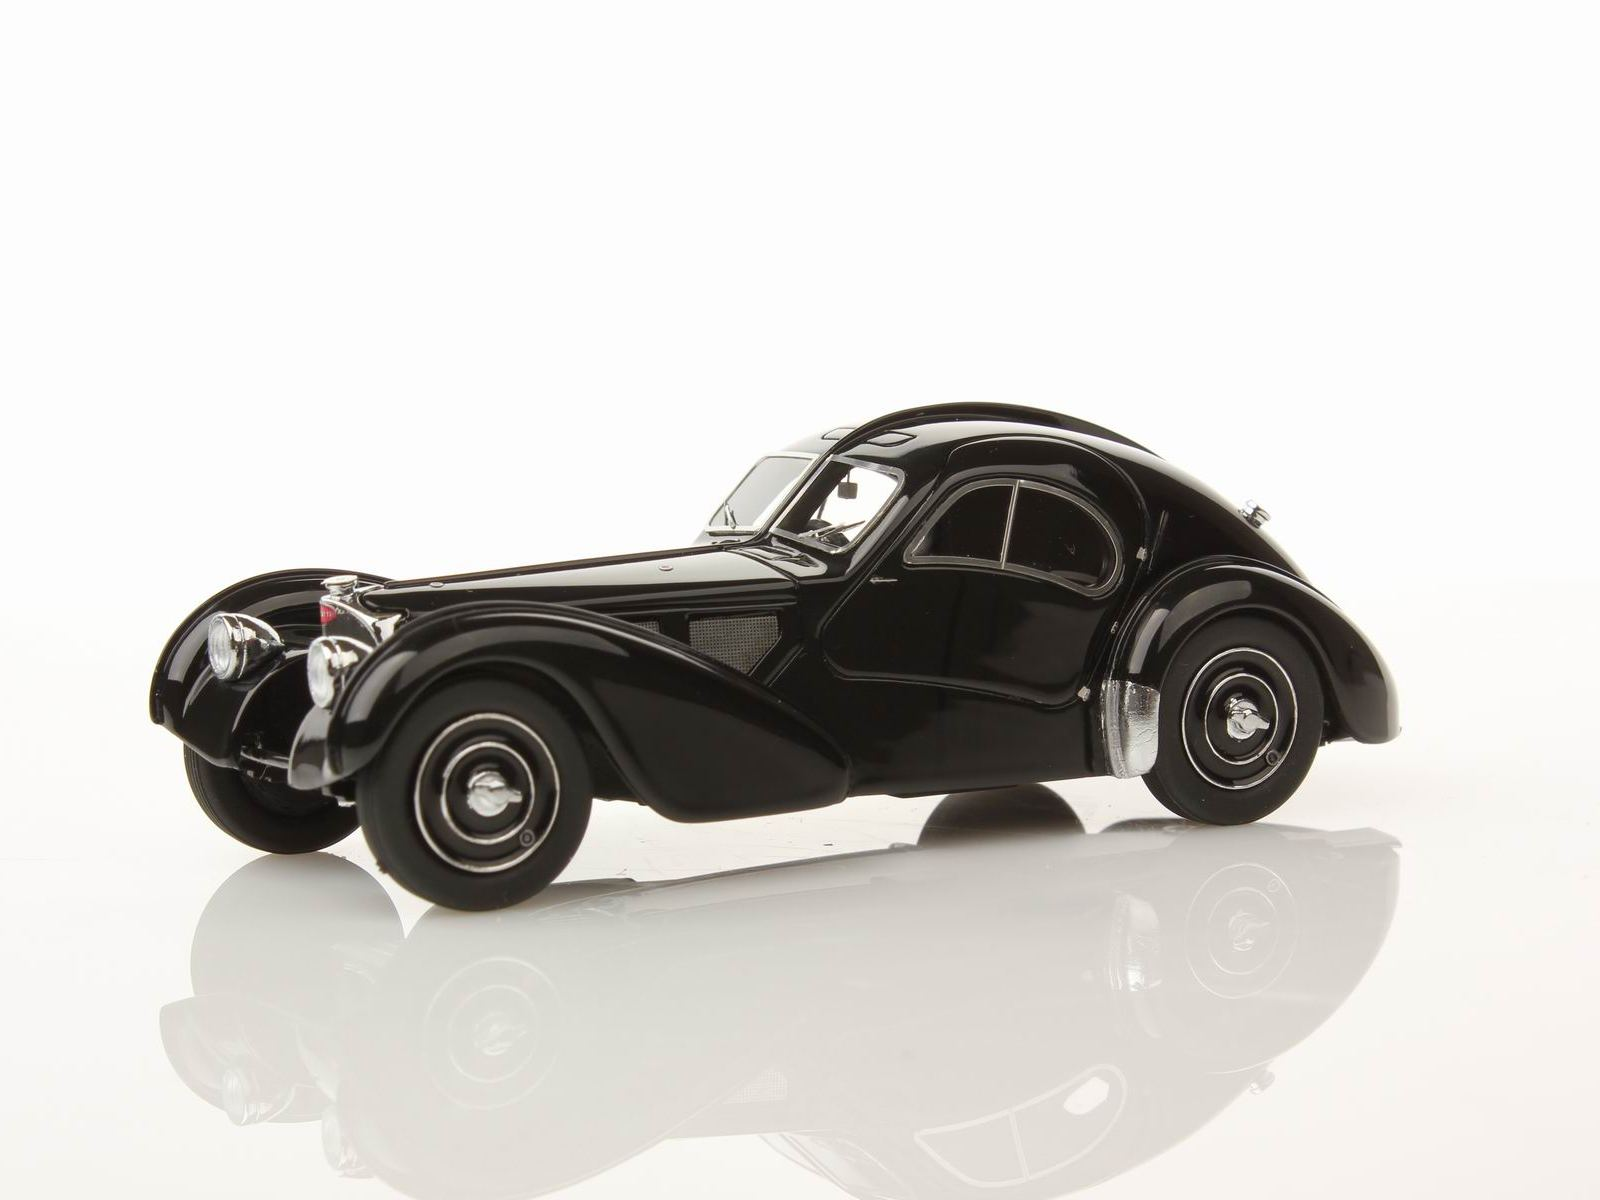 bugatti type 57sc atlantic 1938 chassis 57591 1 43 looksmart models. Cars Review. Best American Auto & Cars Review